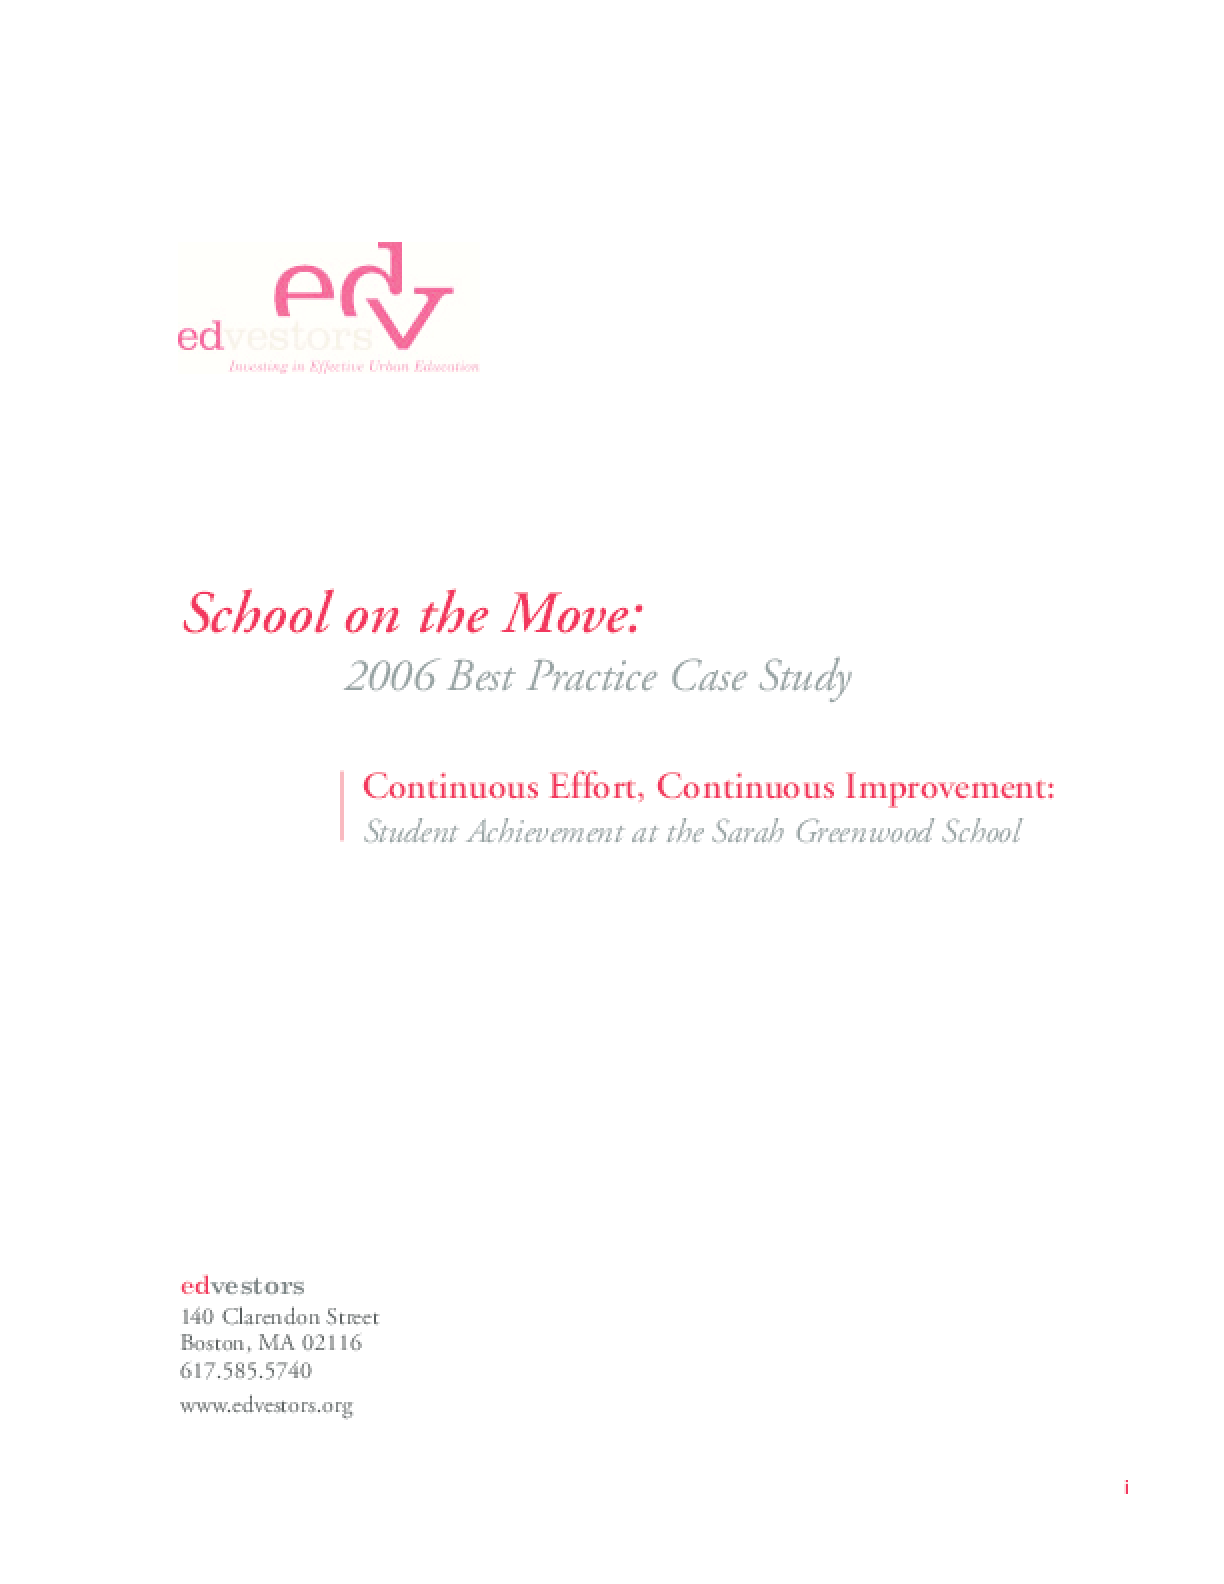 School on the Move: 2006 Best Practices Case Study -- Continuous Effort, Continuous Improvement: Student Achievement at the Sarah Greenwood School